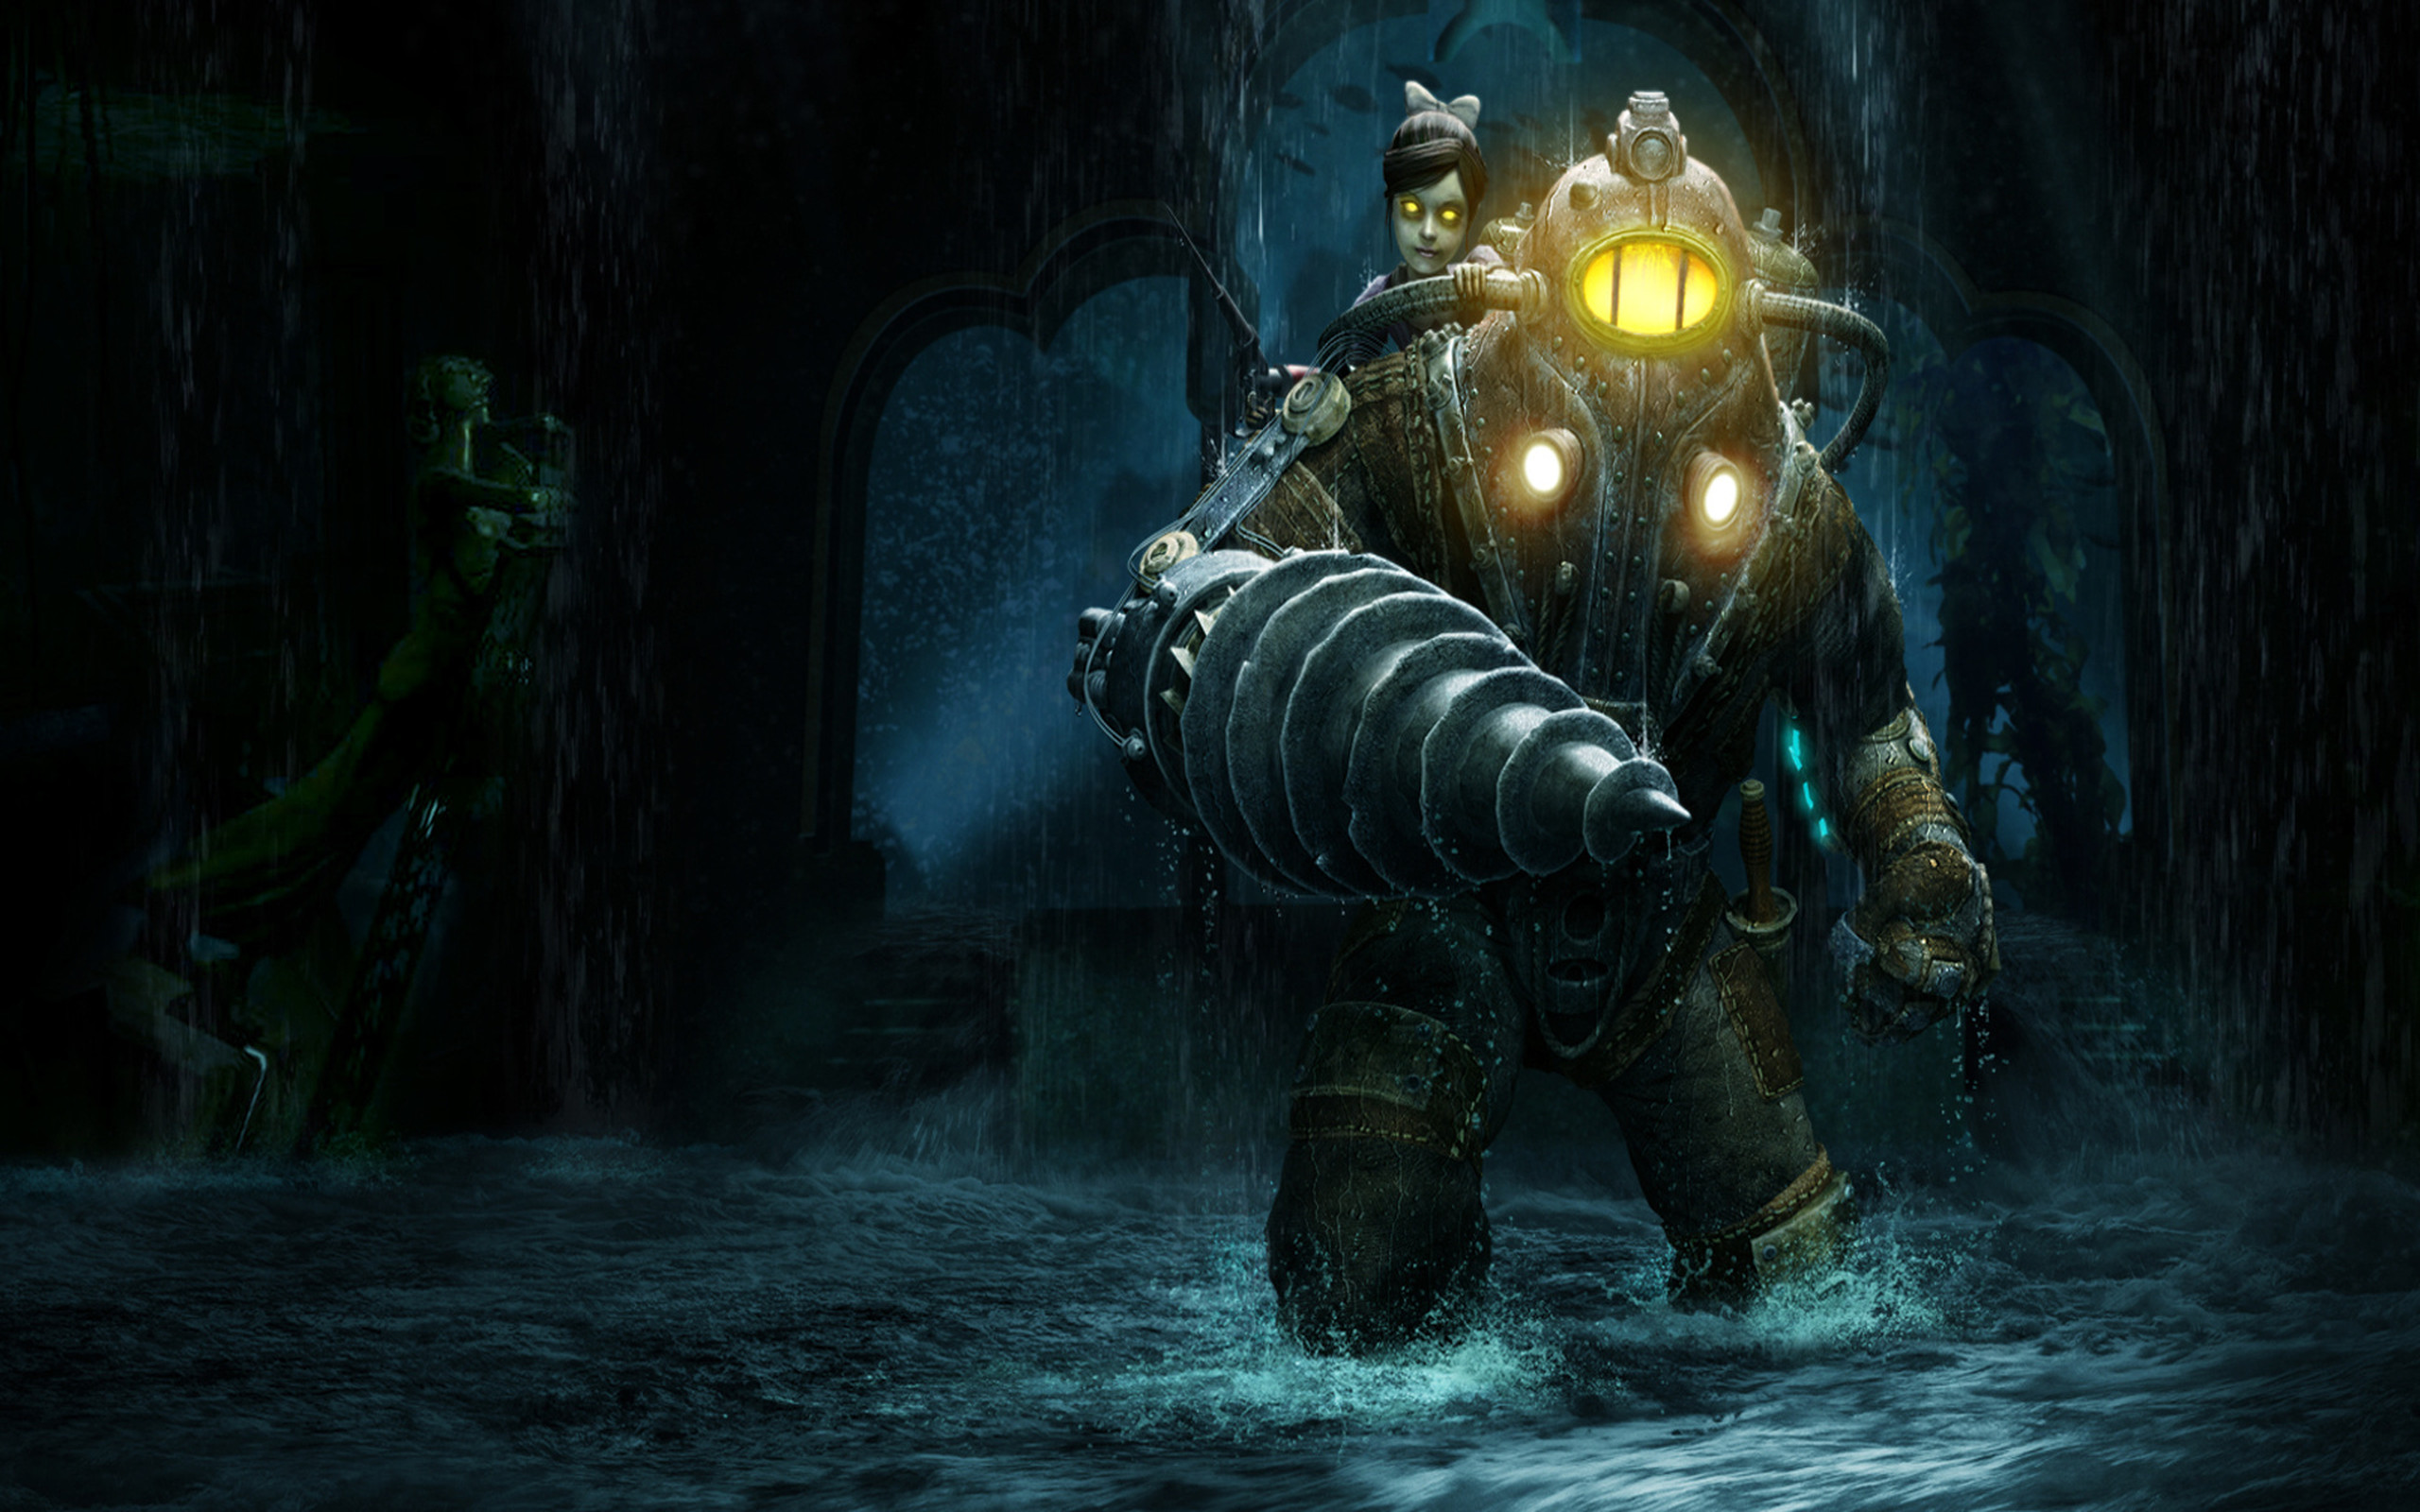 Bioshock 2 Wallpaper